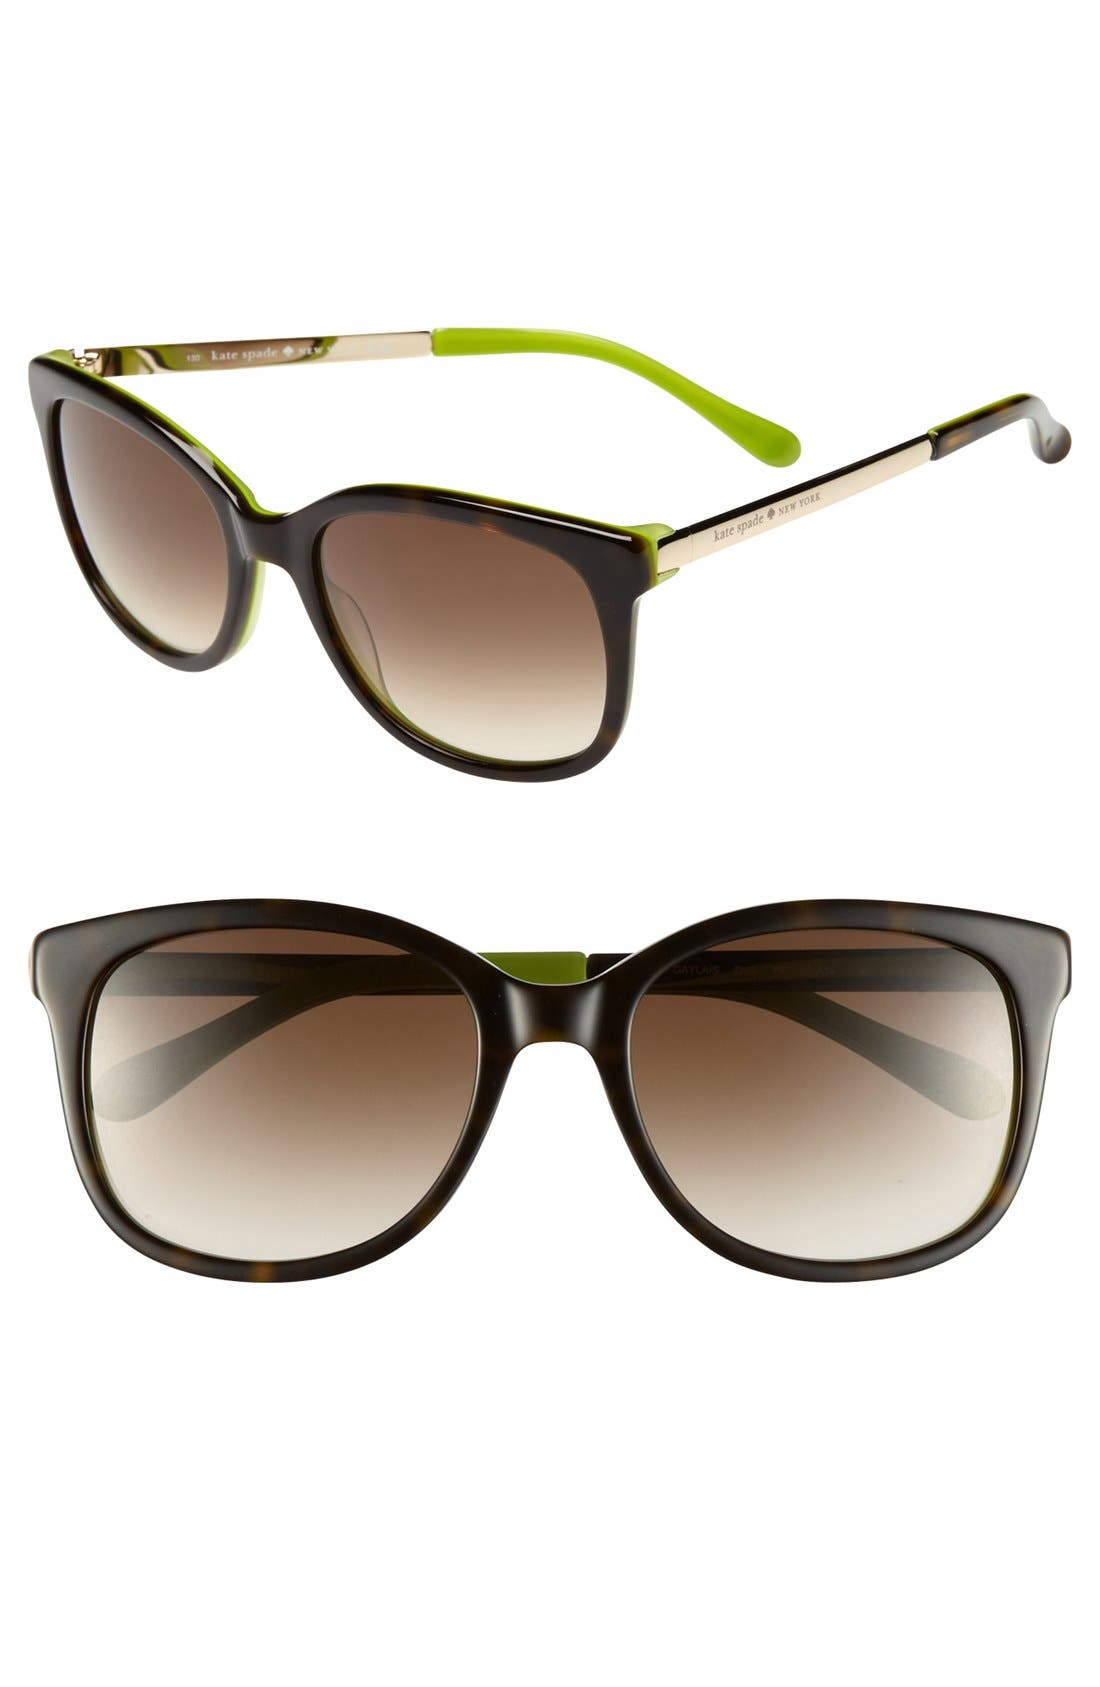 Main Image - kate spade new york 'gayla' 52mm sunglasses